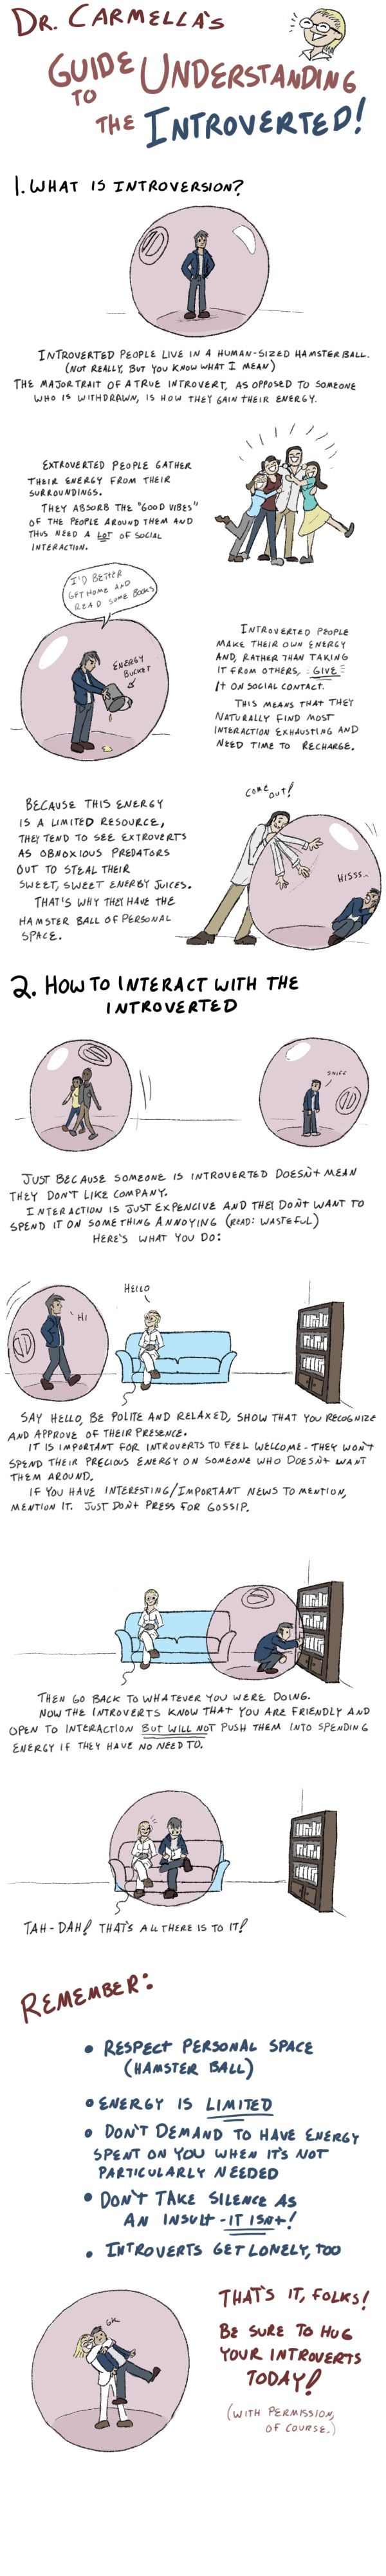 Guide to understanding the introverted…so funny! Hamster ball! Hahahaha!